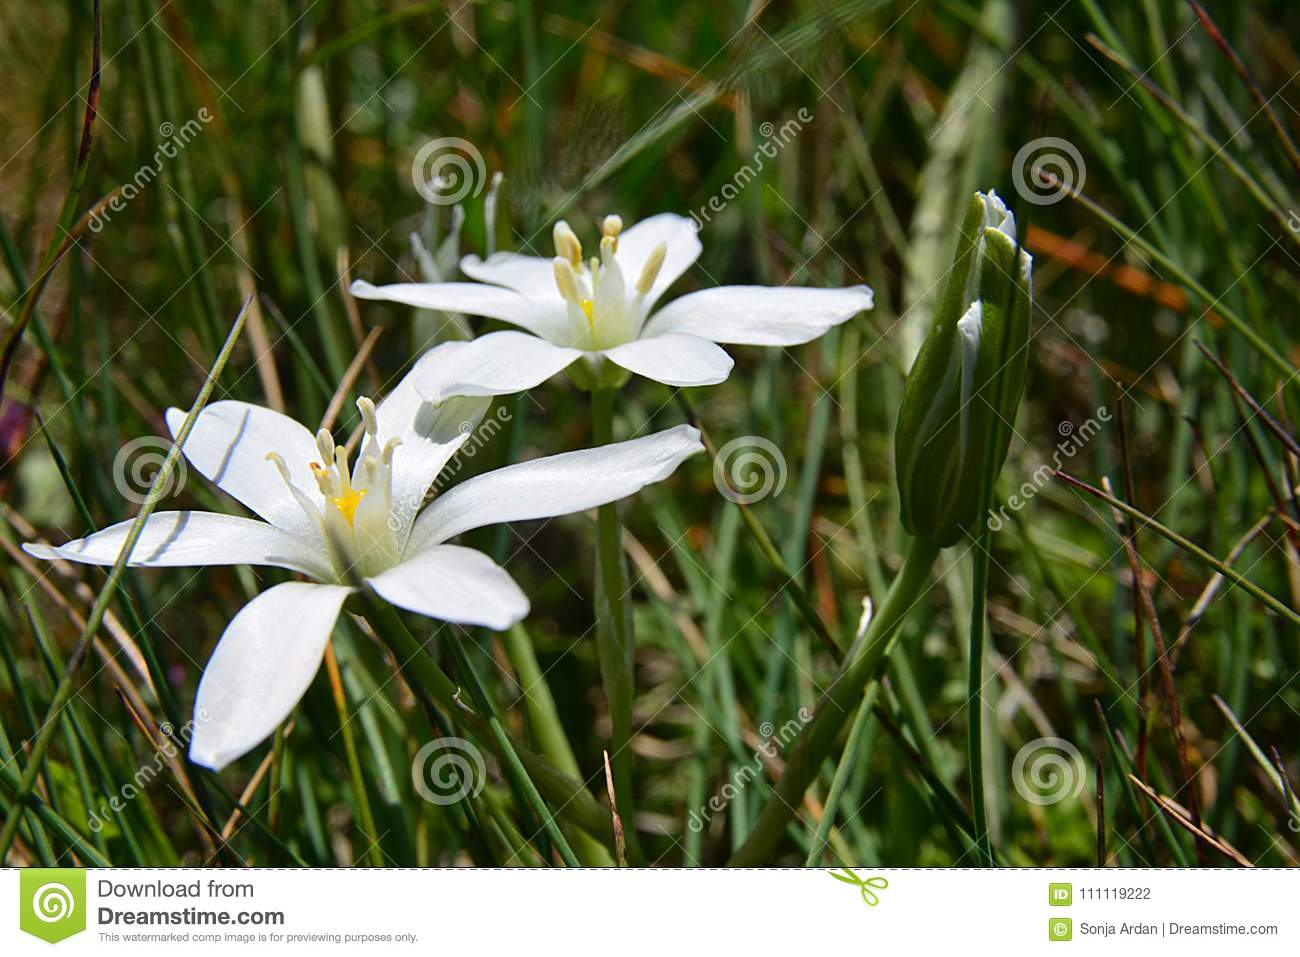 Starry White Flowers In The Grass Swaying In The Wind Stock Photo